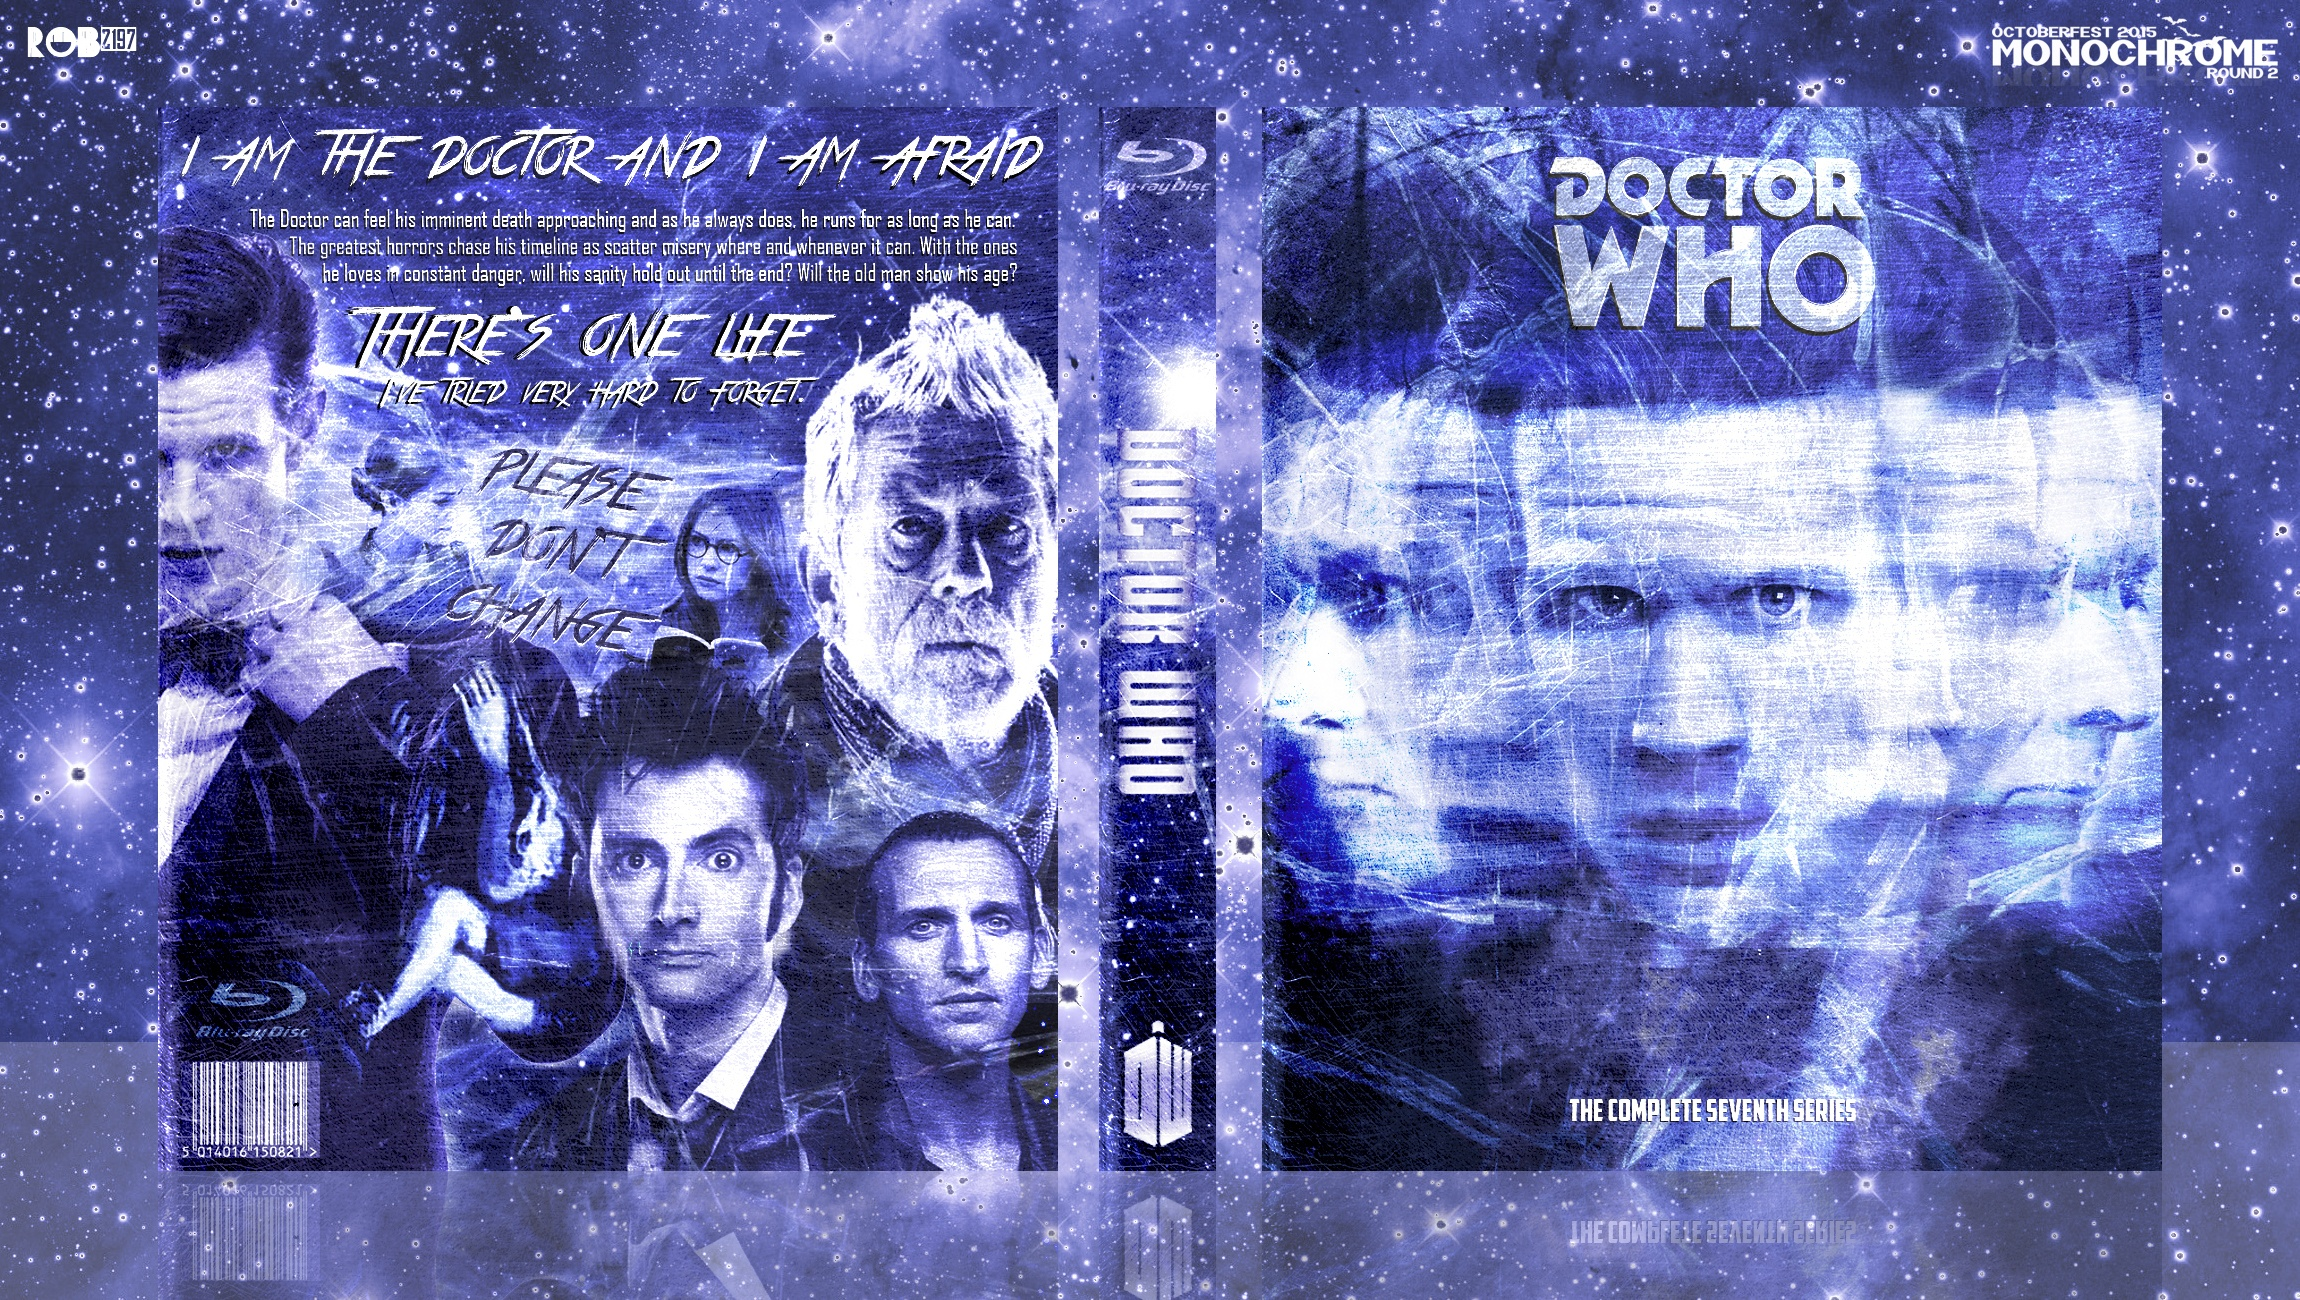 Doctor Who: Series 7 box cover